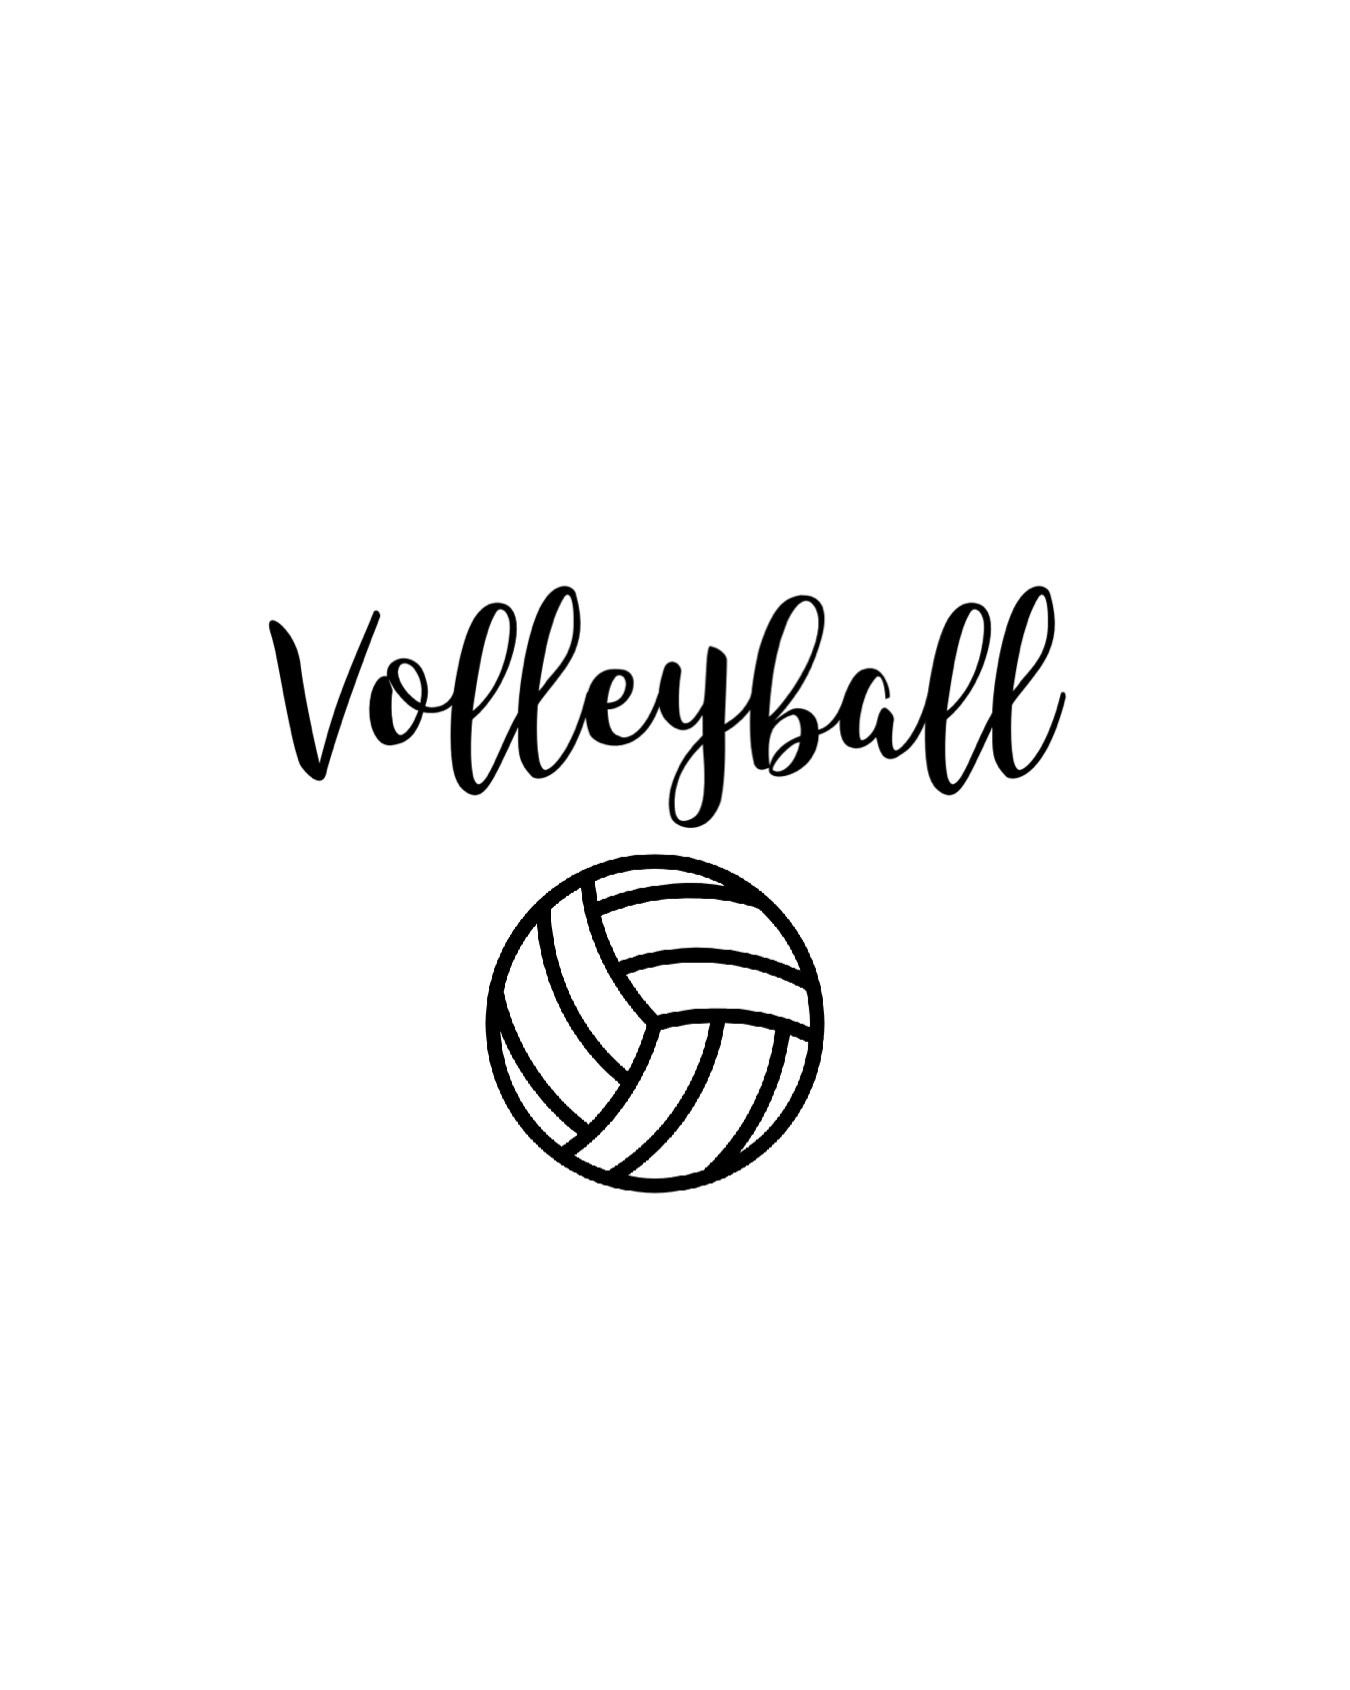 Pin By Kayla On V O ɩ ɩ ɛ Y B A ɩ ɩ Volleyball Wallpaper Volleyball Players Volleyball Drawing